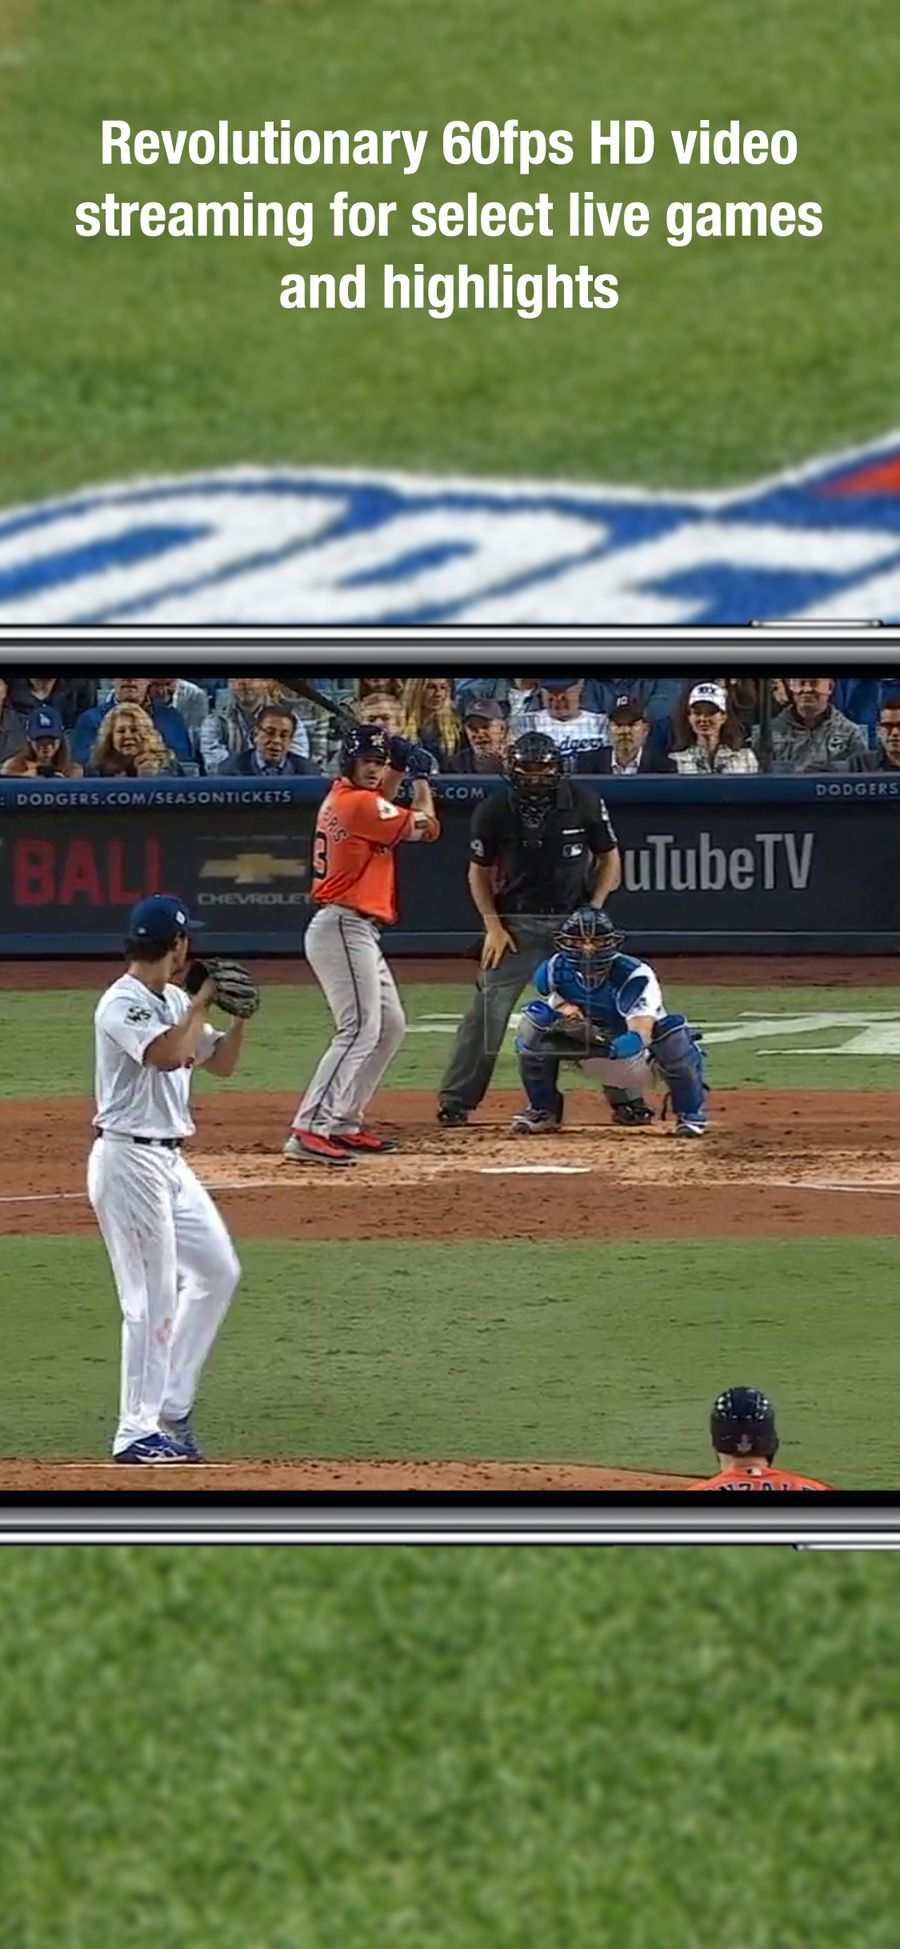 Mlb At Bat Ios Apps App Entertainment Free Apps For Iphone Iphone Apps Free Video Streaming